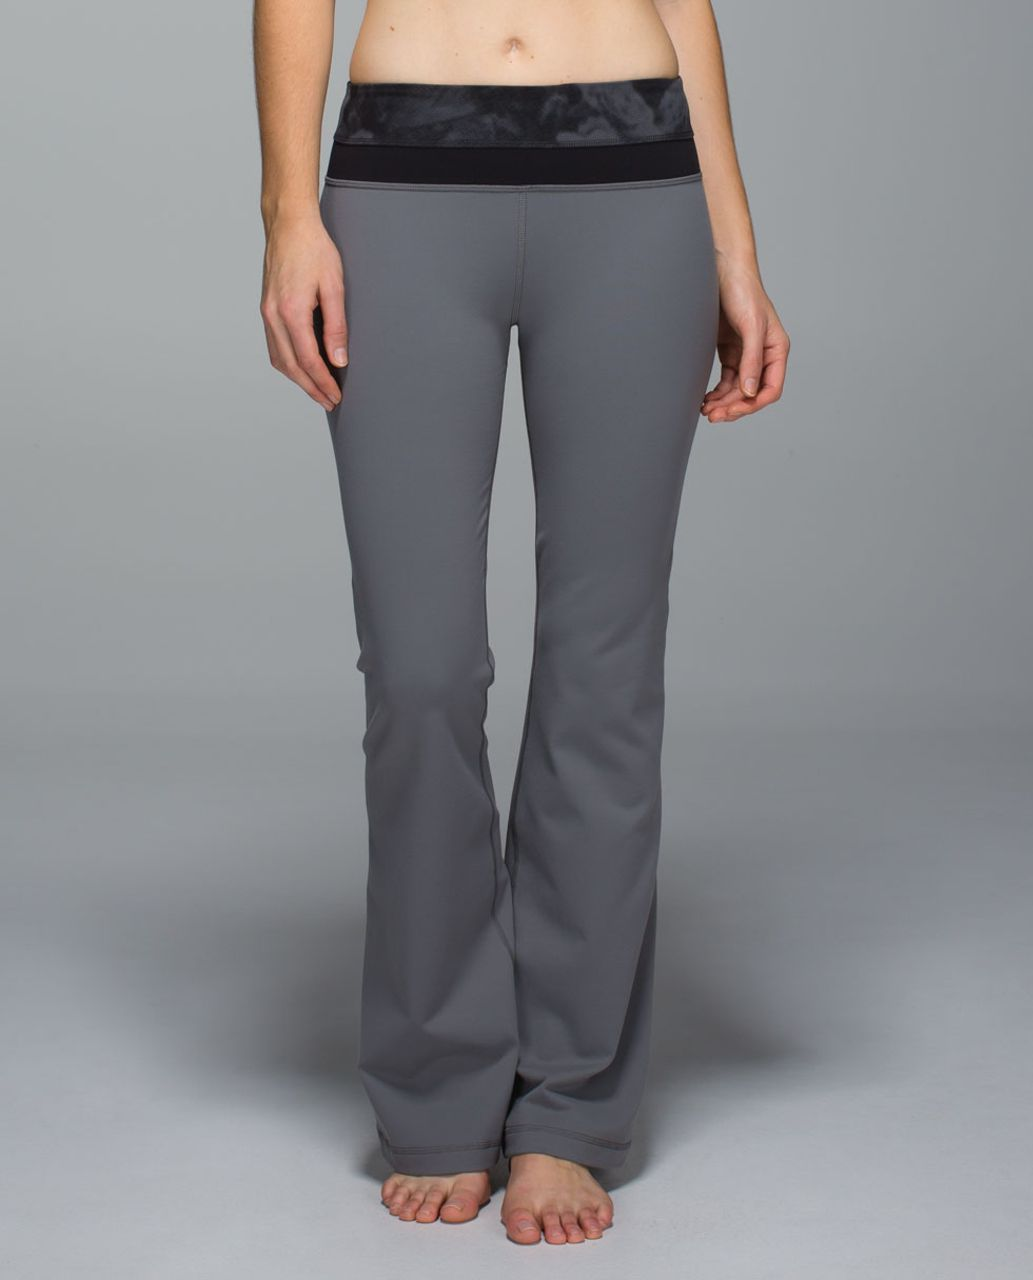 Lululemon Groove Pant *Full-On Luon (Regular) - Slate / Dream Rose Deep Coal Light / Black